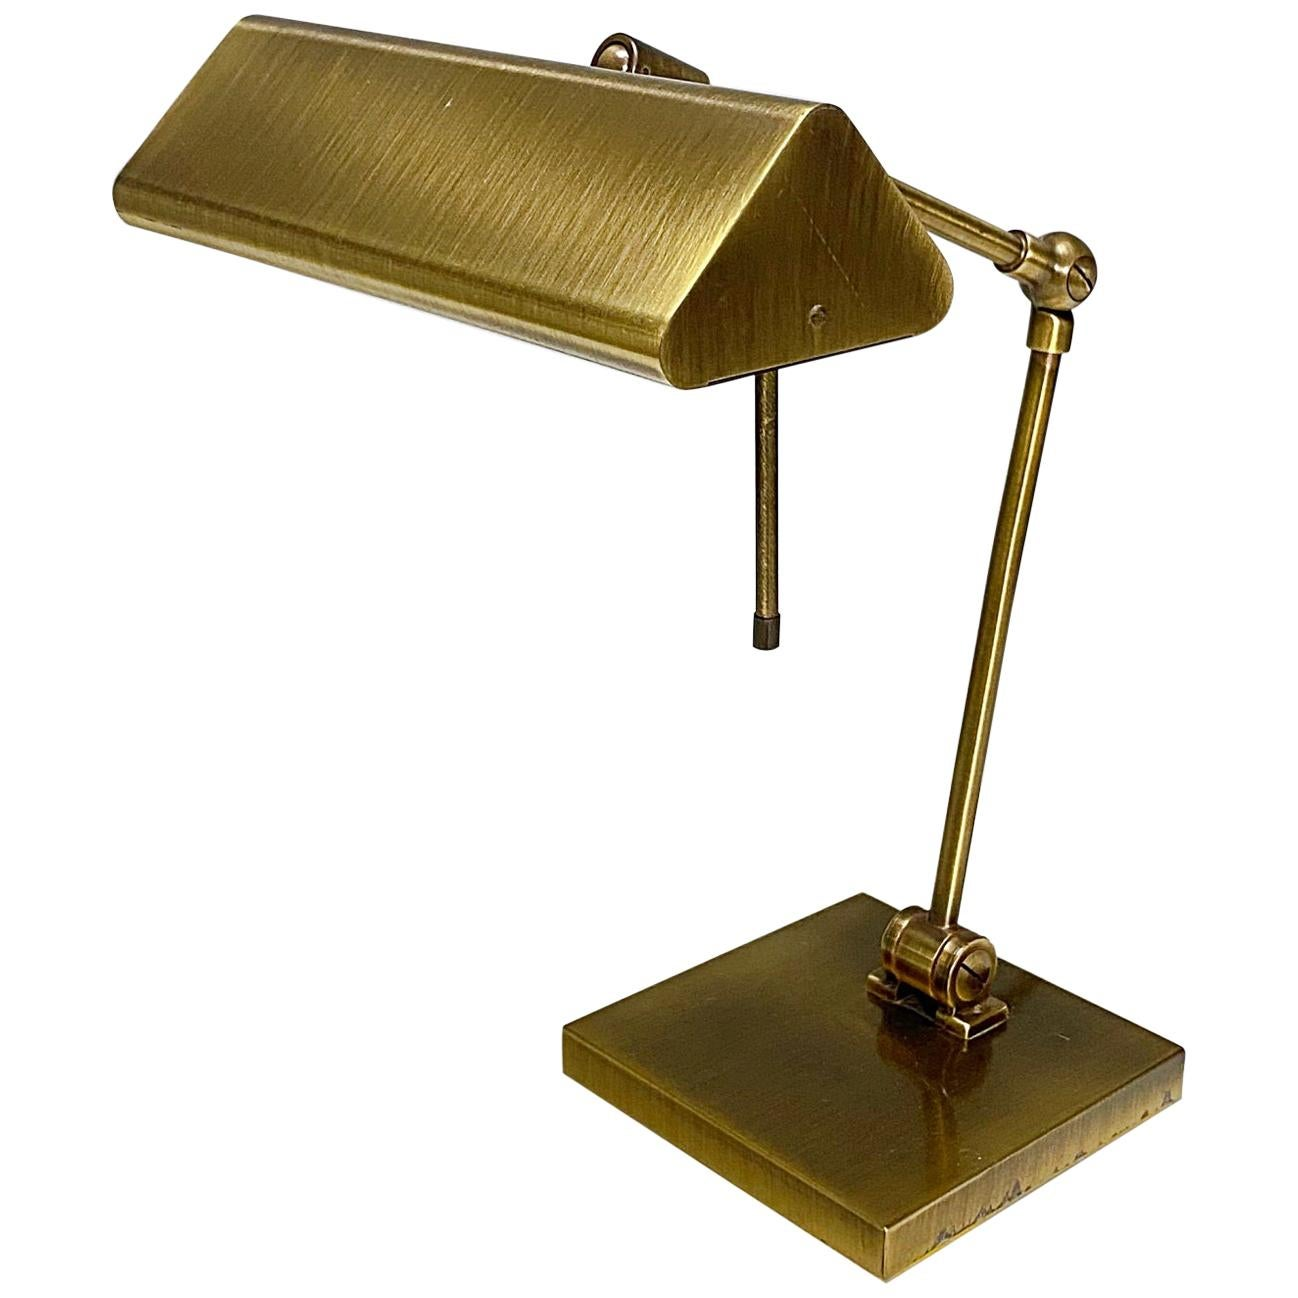 Relco Milano Midcentury Brass Table Lamp, 1970s, Italy